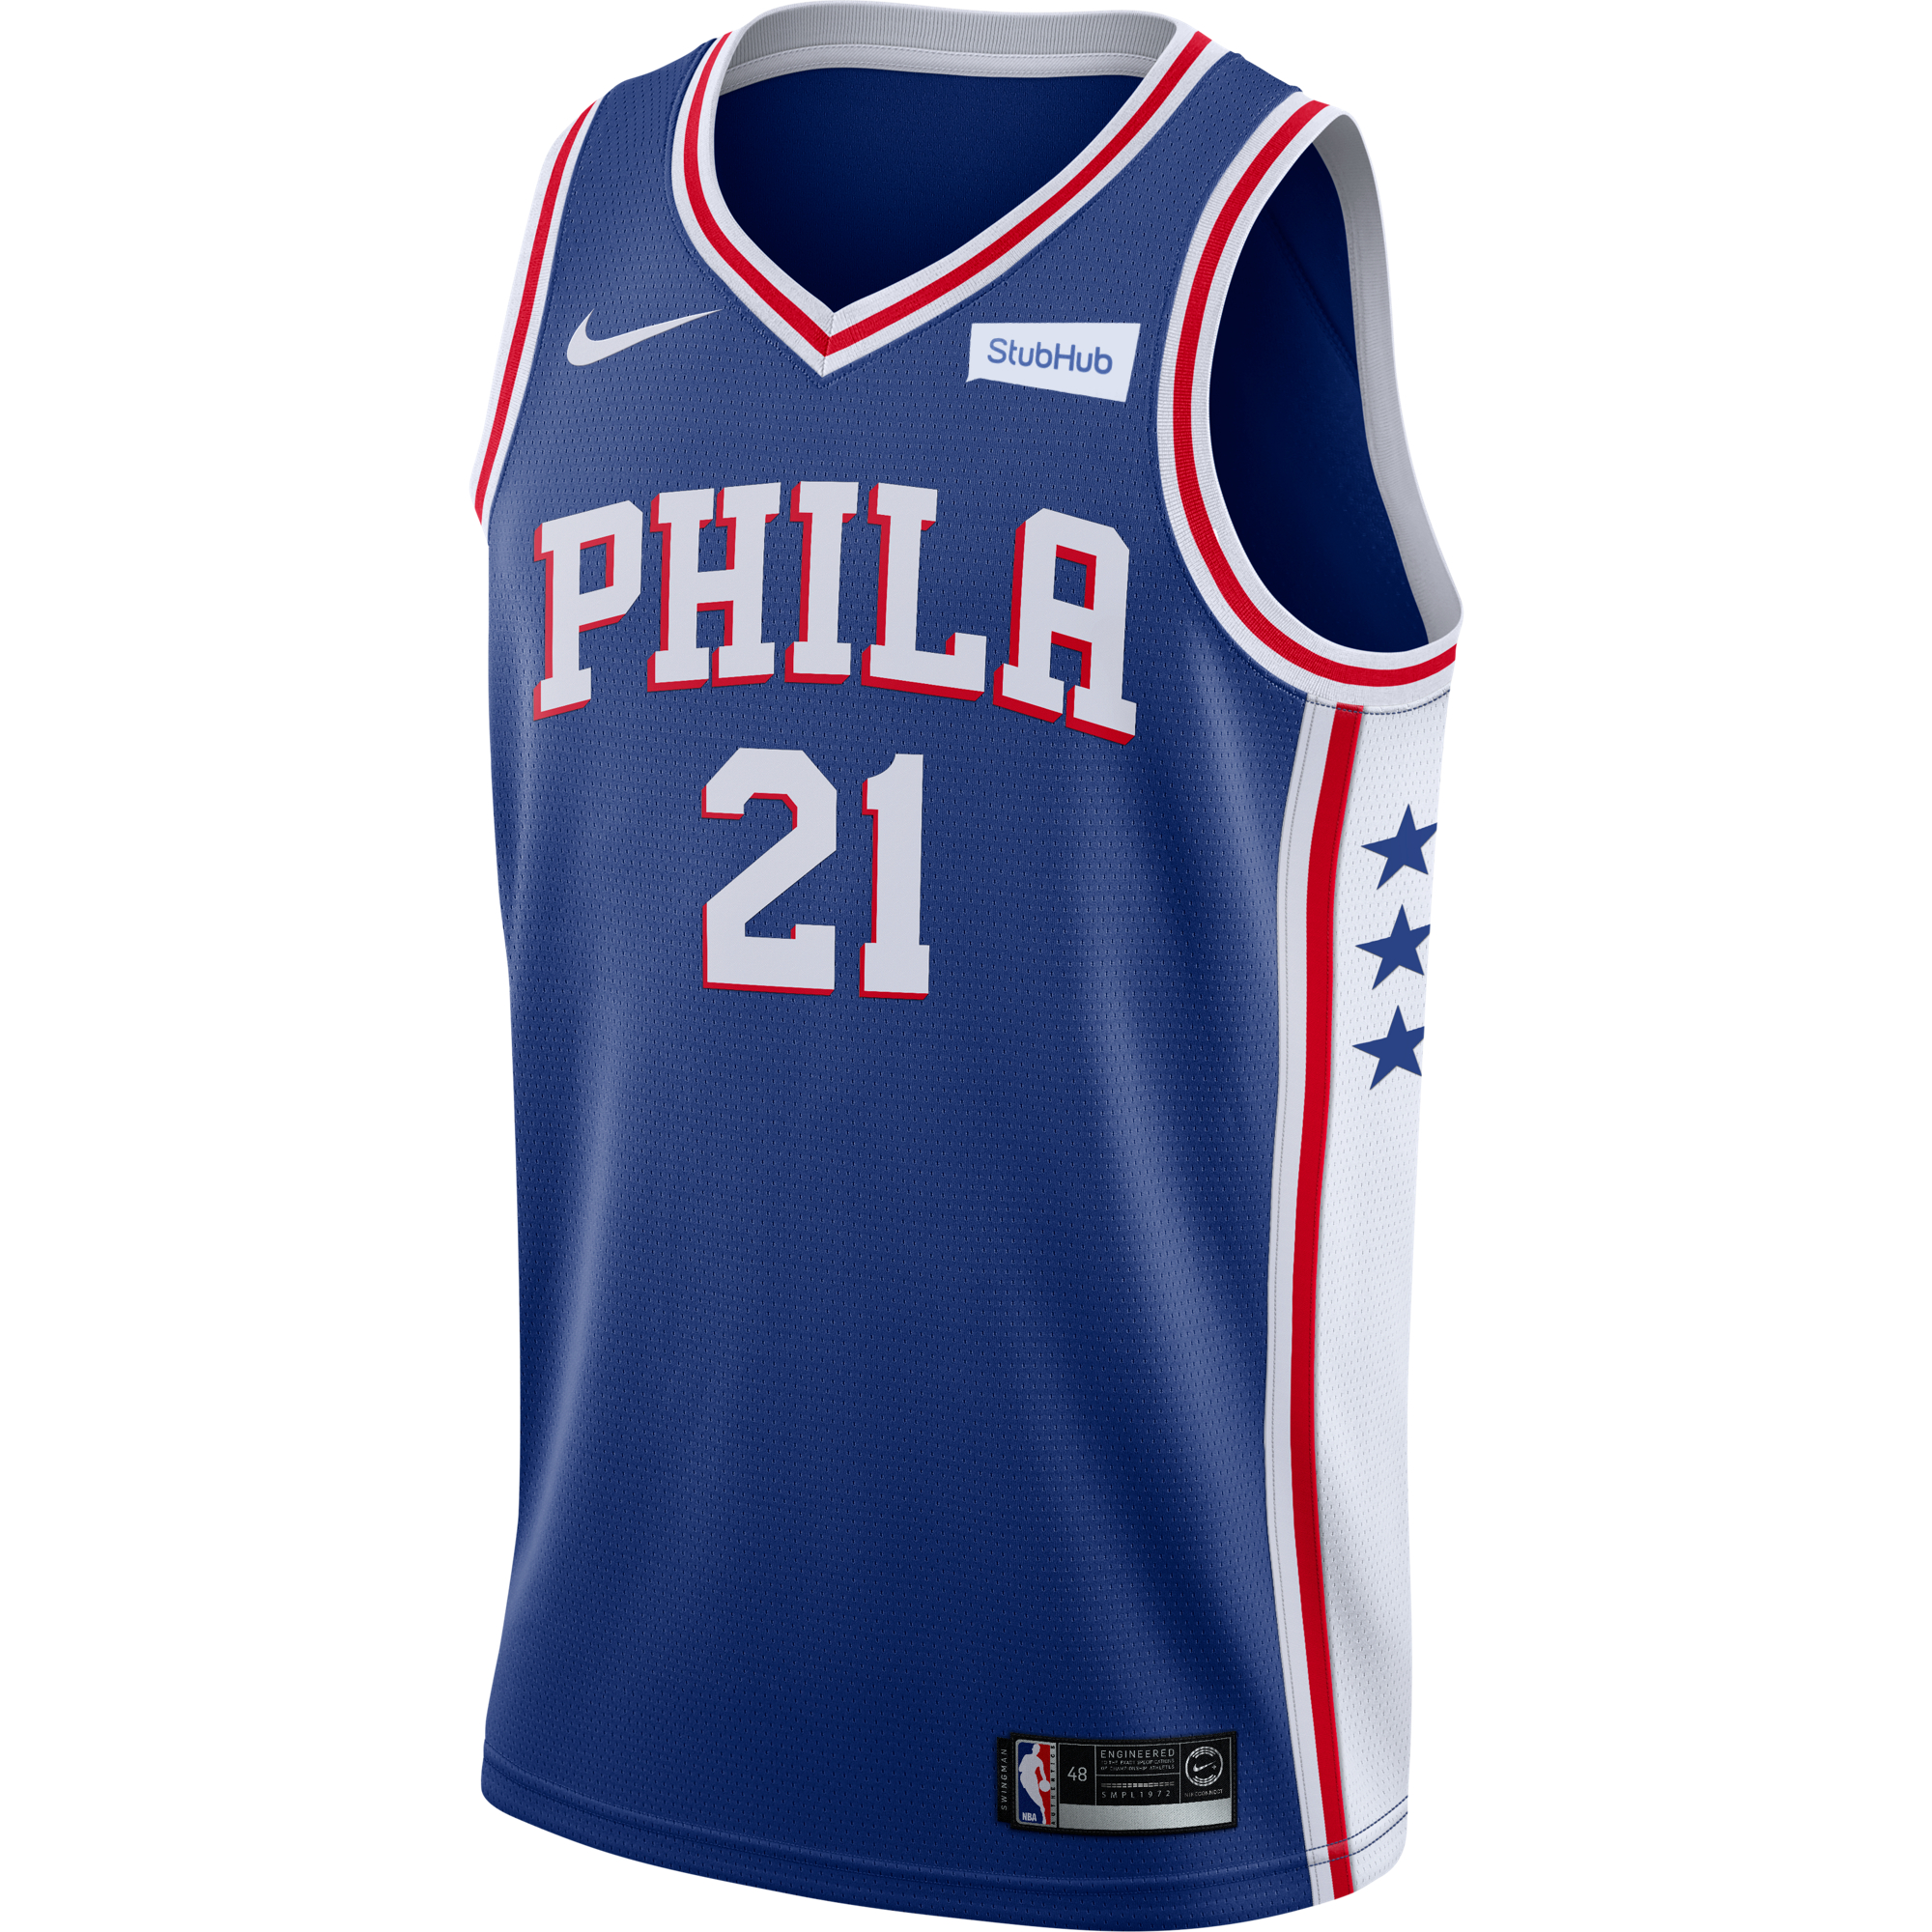 buy popular 2f563 d247a Philadelphia 76ers Men's White Ben Simmons Earned Edition Swingman Jersey  by Nike